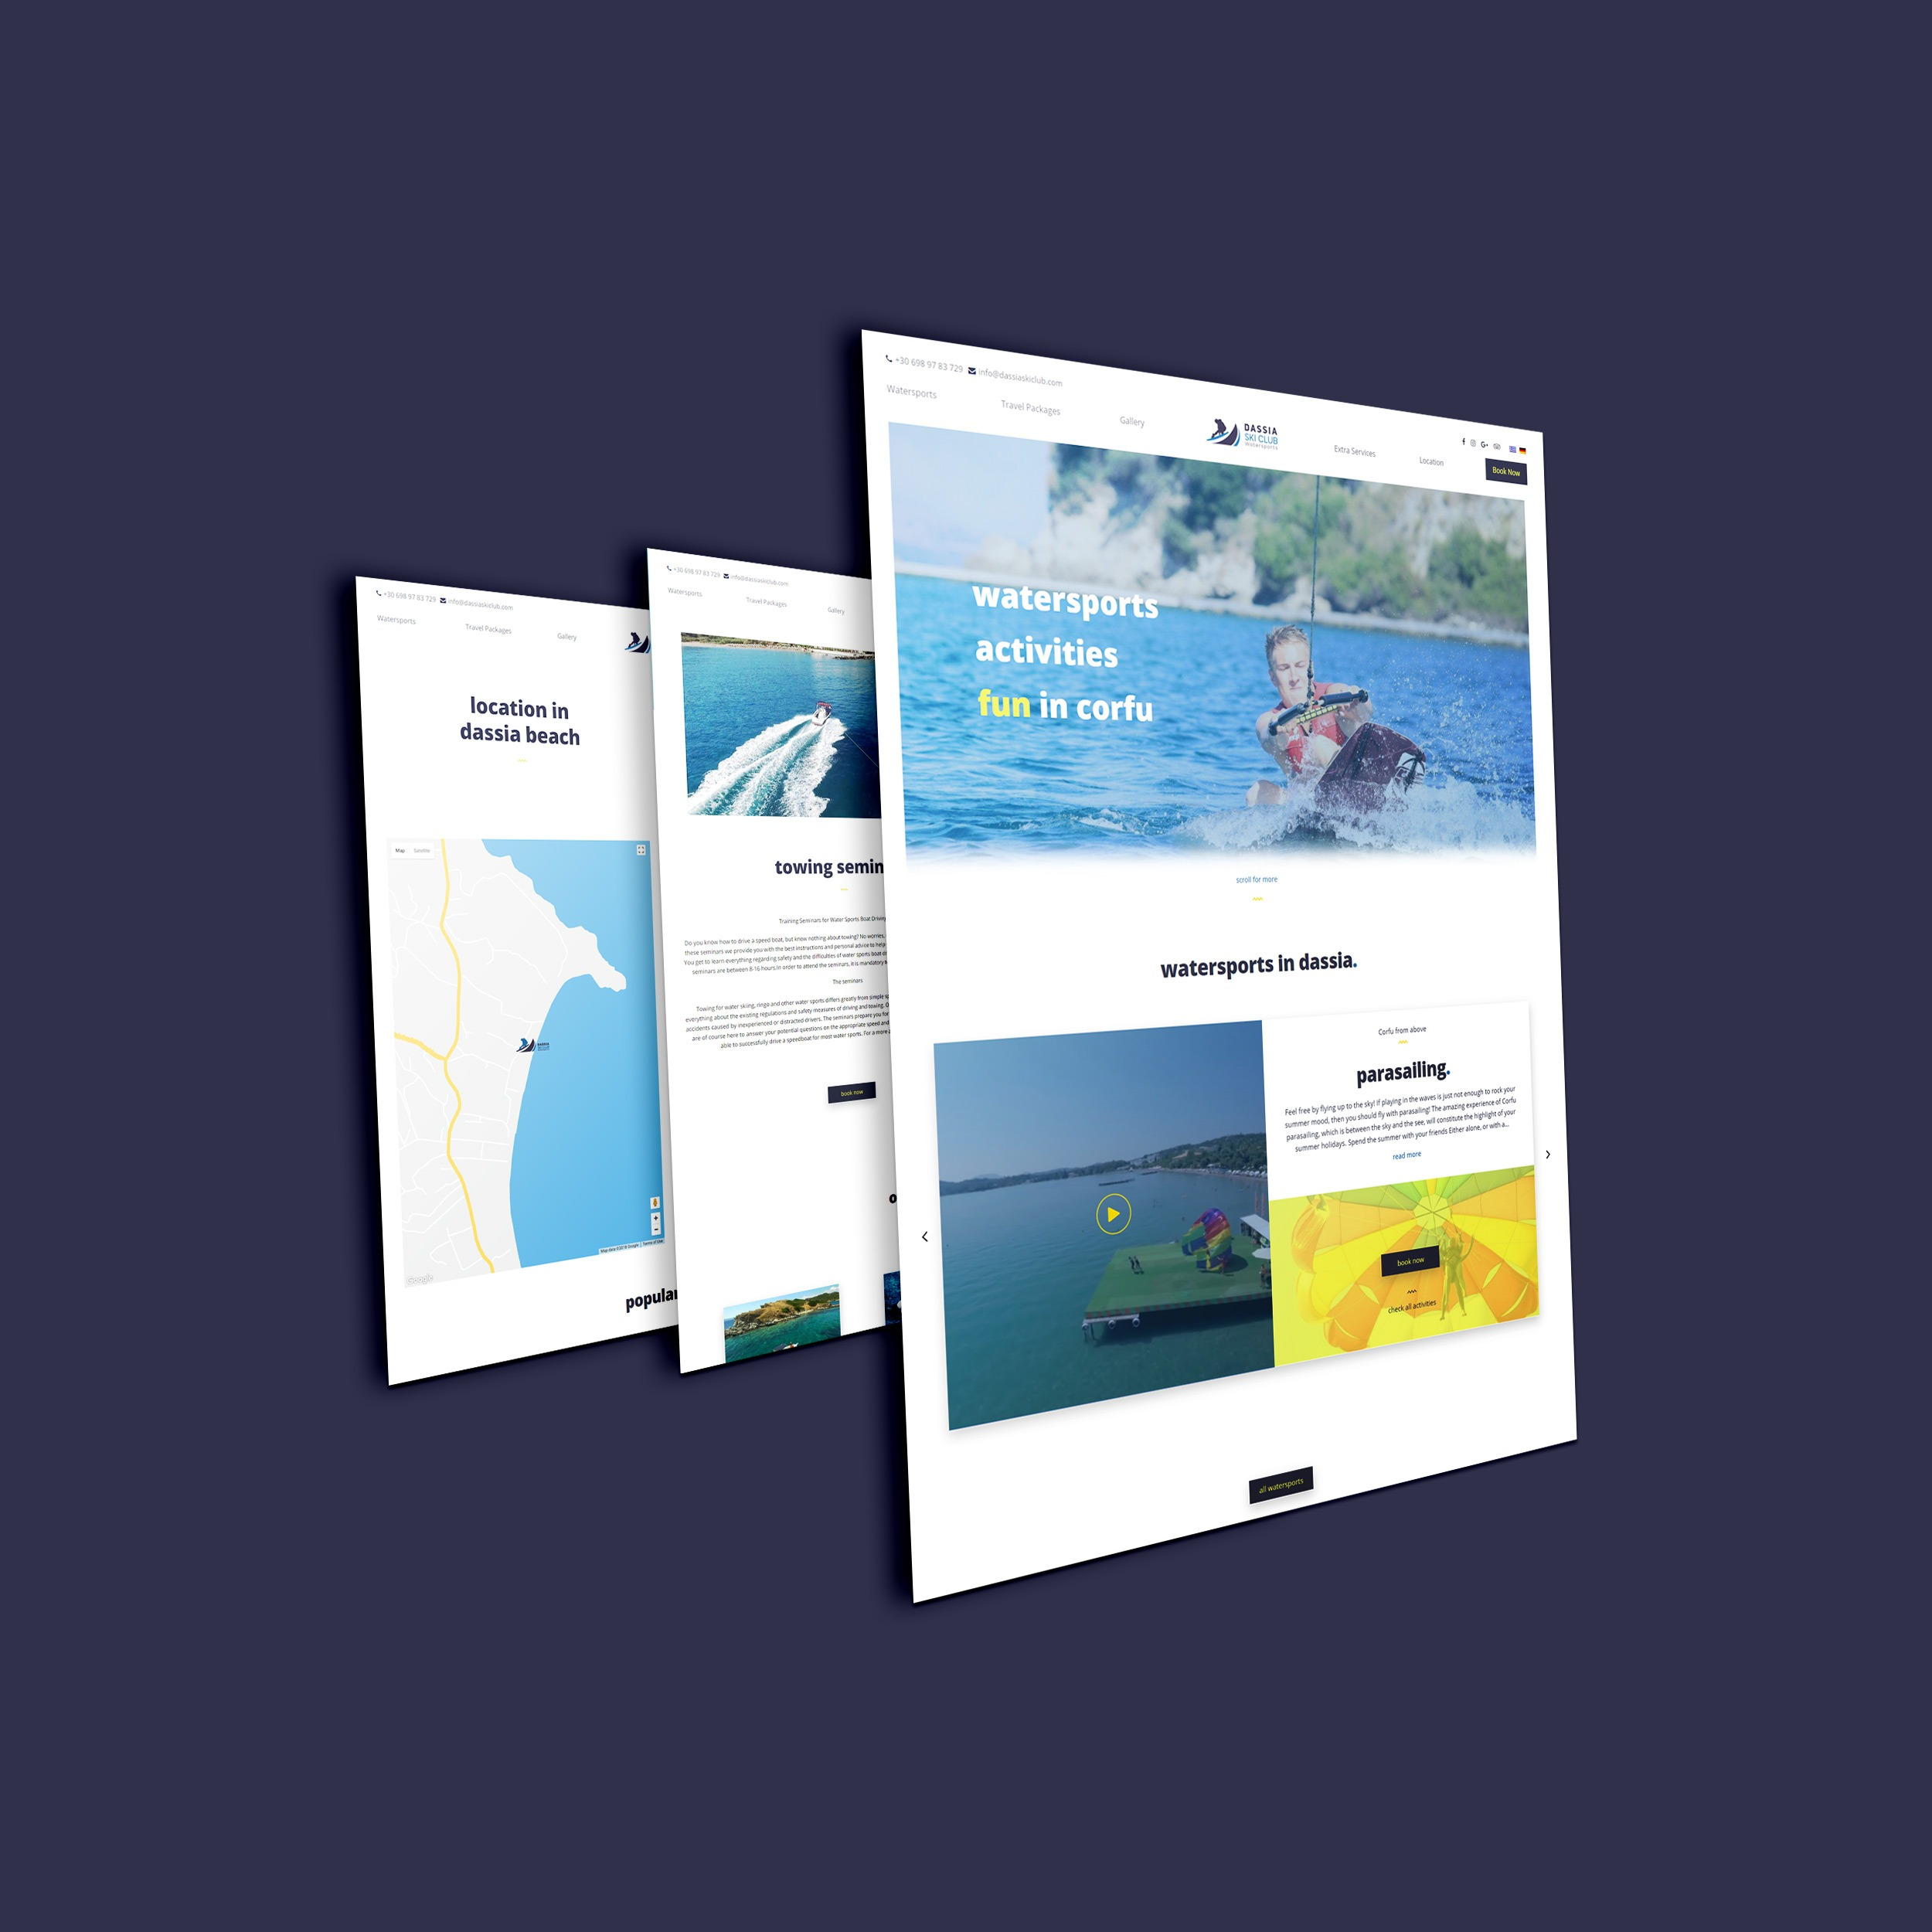 watersports-dassiaskiclub-web-design-corfu-